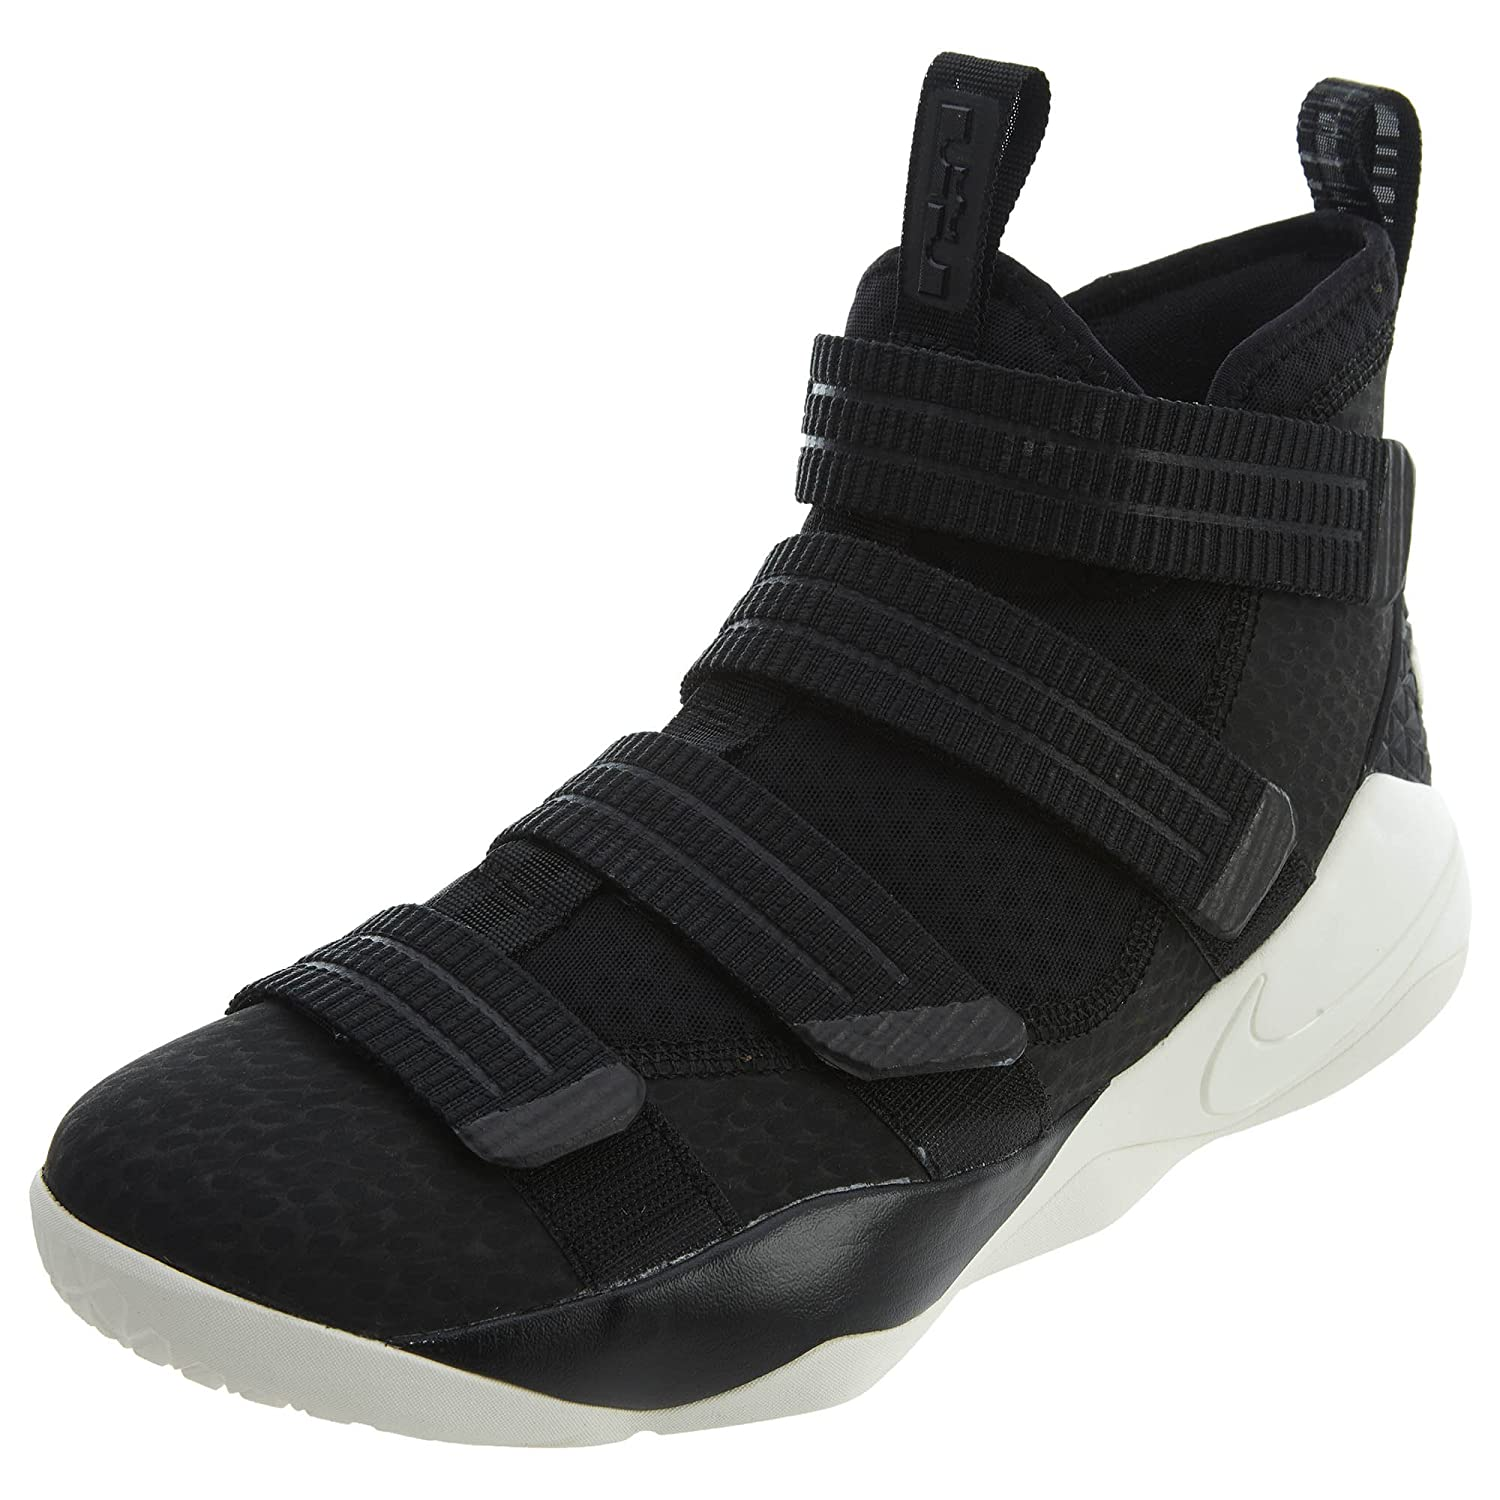 lowest price 2073a f33ca Amazon.com   Nike Lebron Soldier XI Mens Basketball Shoes   Basketball